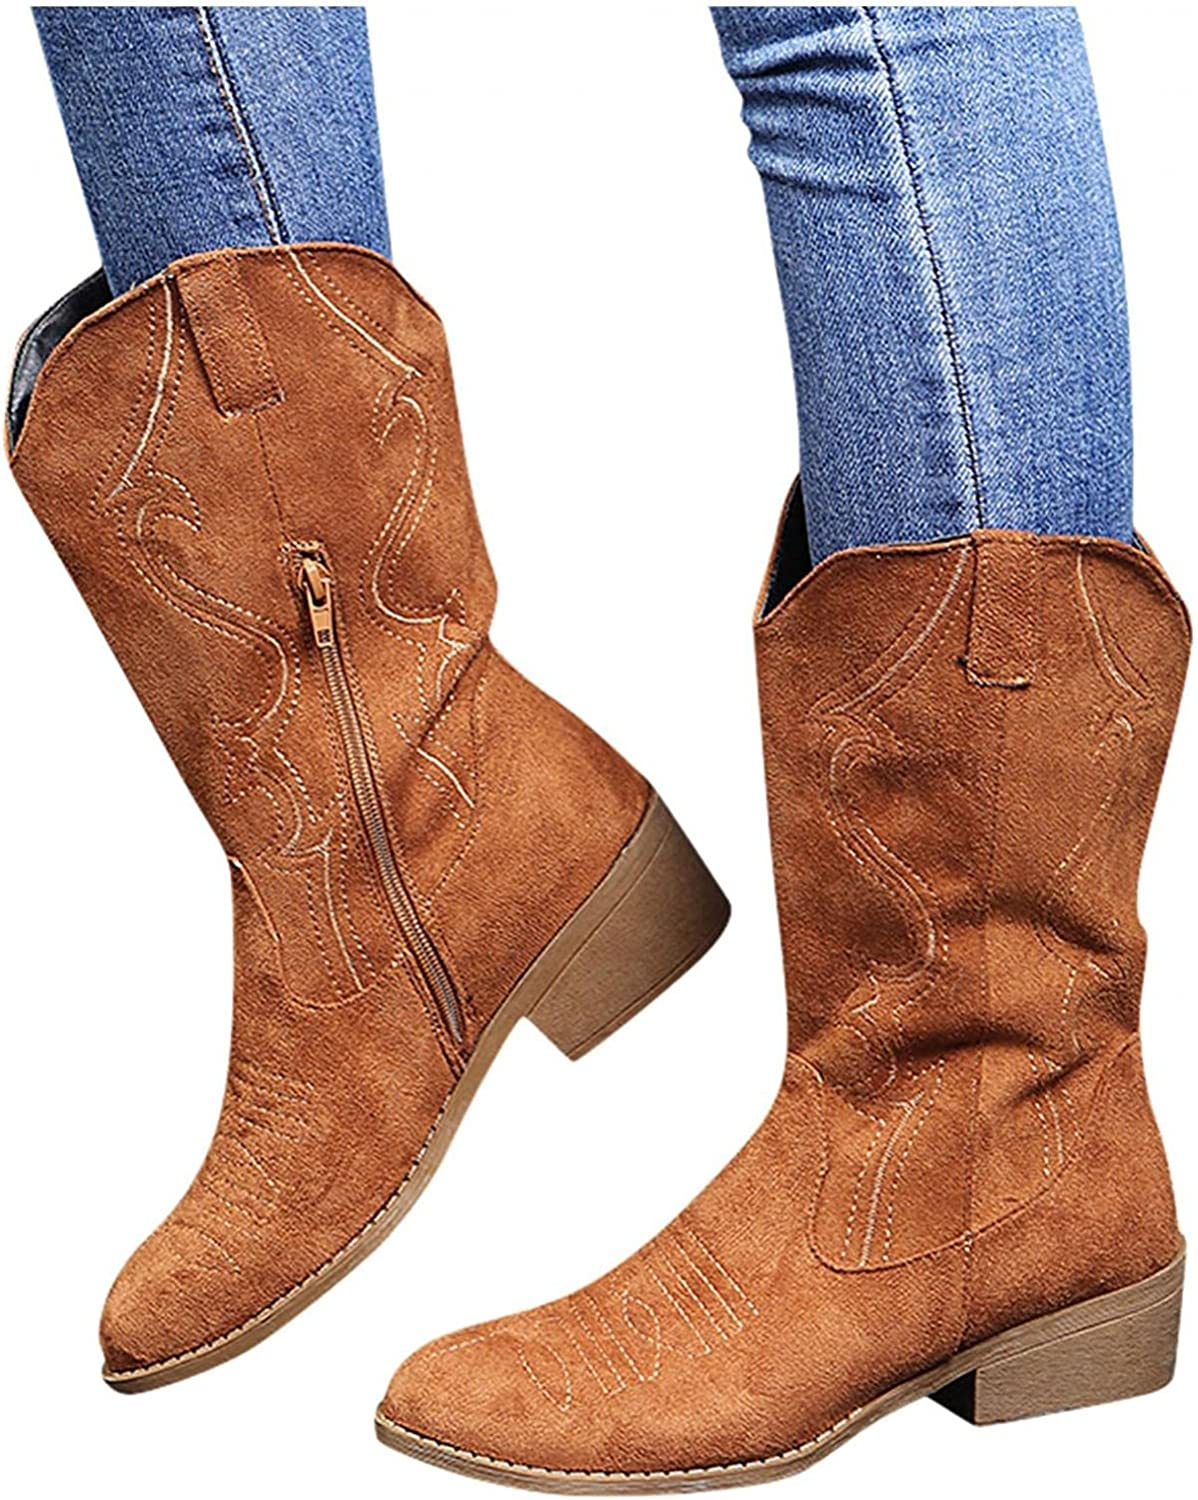 AODONG Cowboy Boots for Women Wide Calf Women's Fashion Wide Square Toe Sunflower Cowgirl Platform Boots Mid Calf Booties